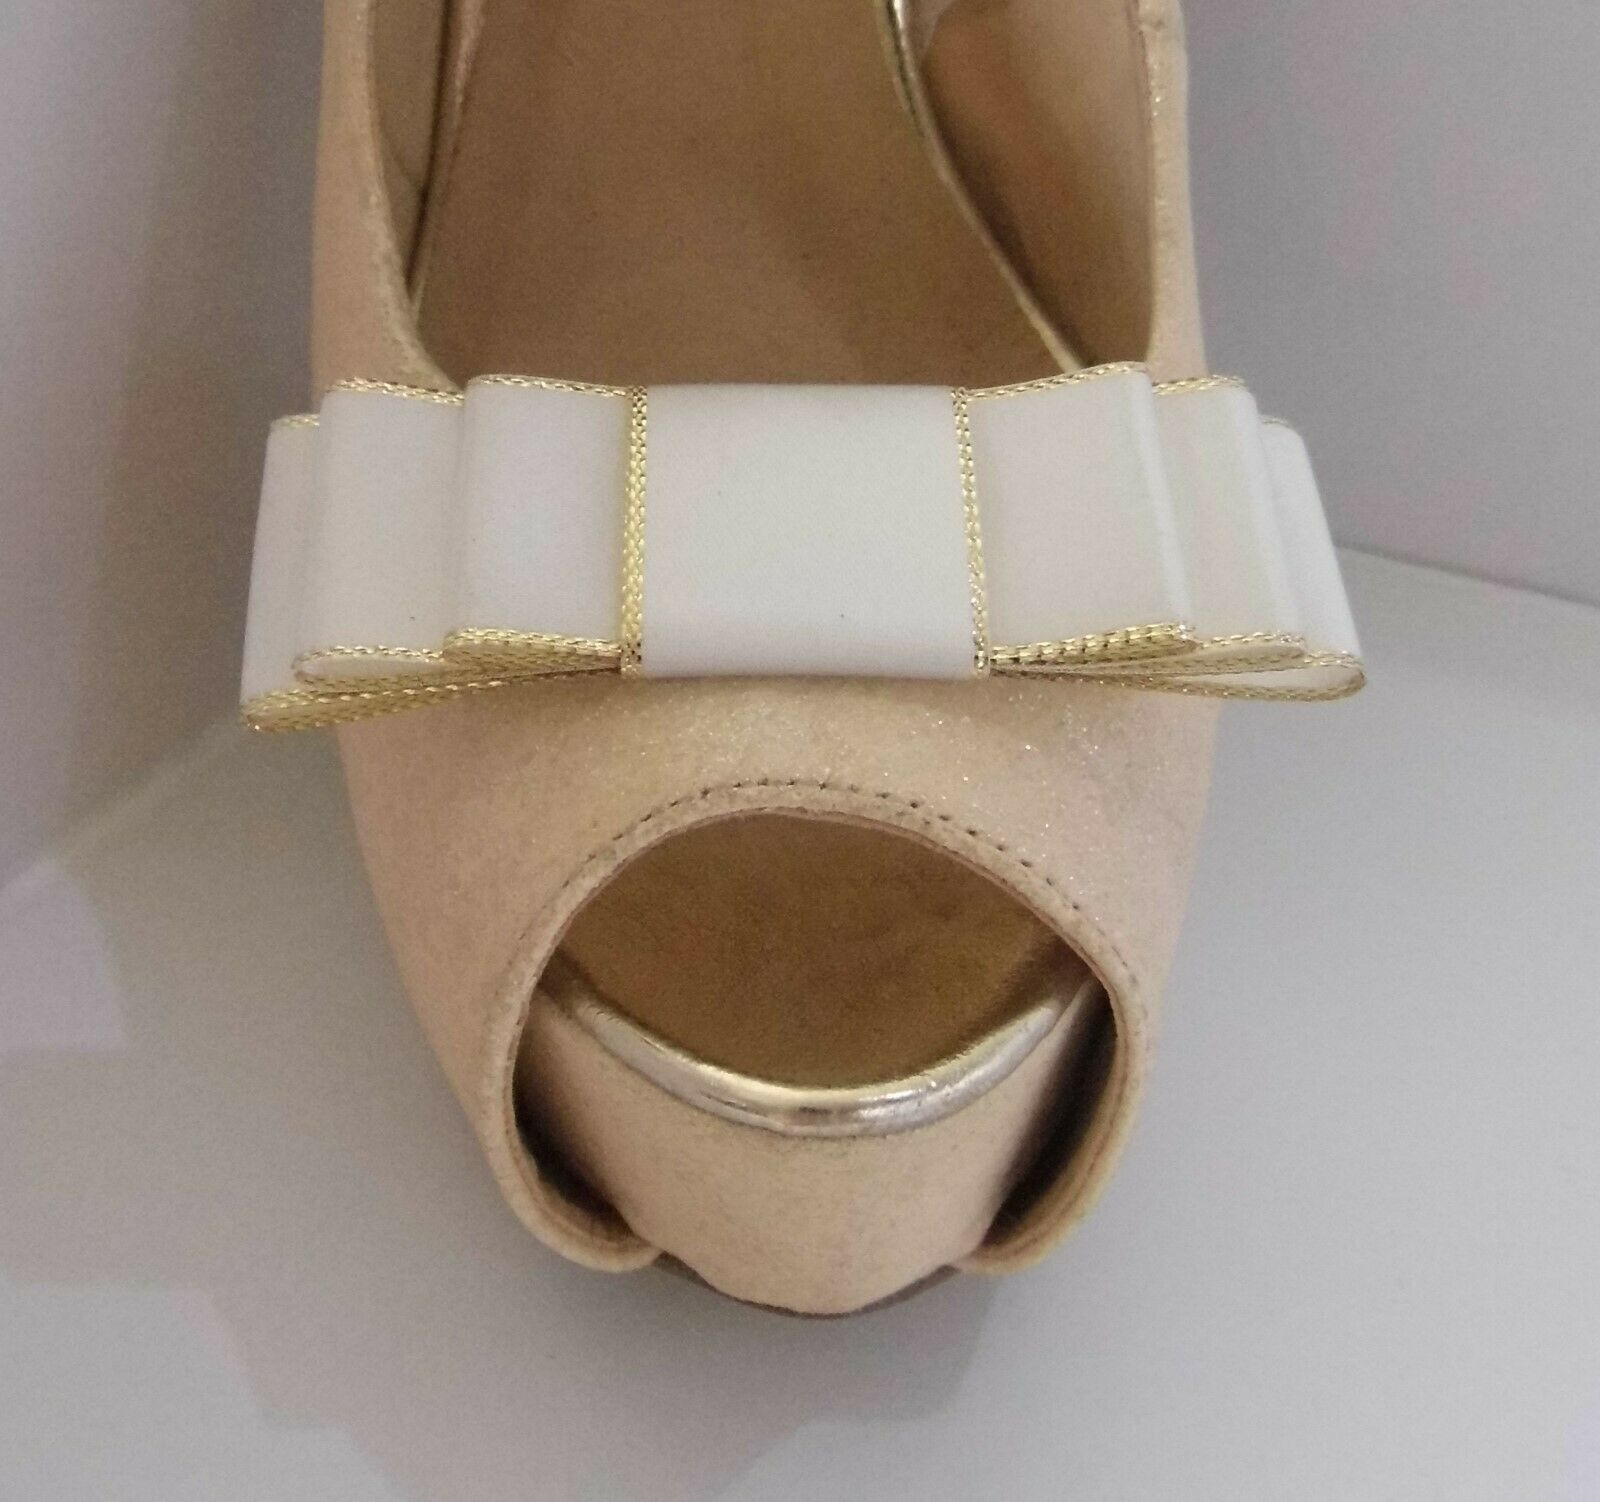 2 Ivory Triple Bow Clips for Shoes with Gold Trim